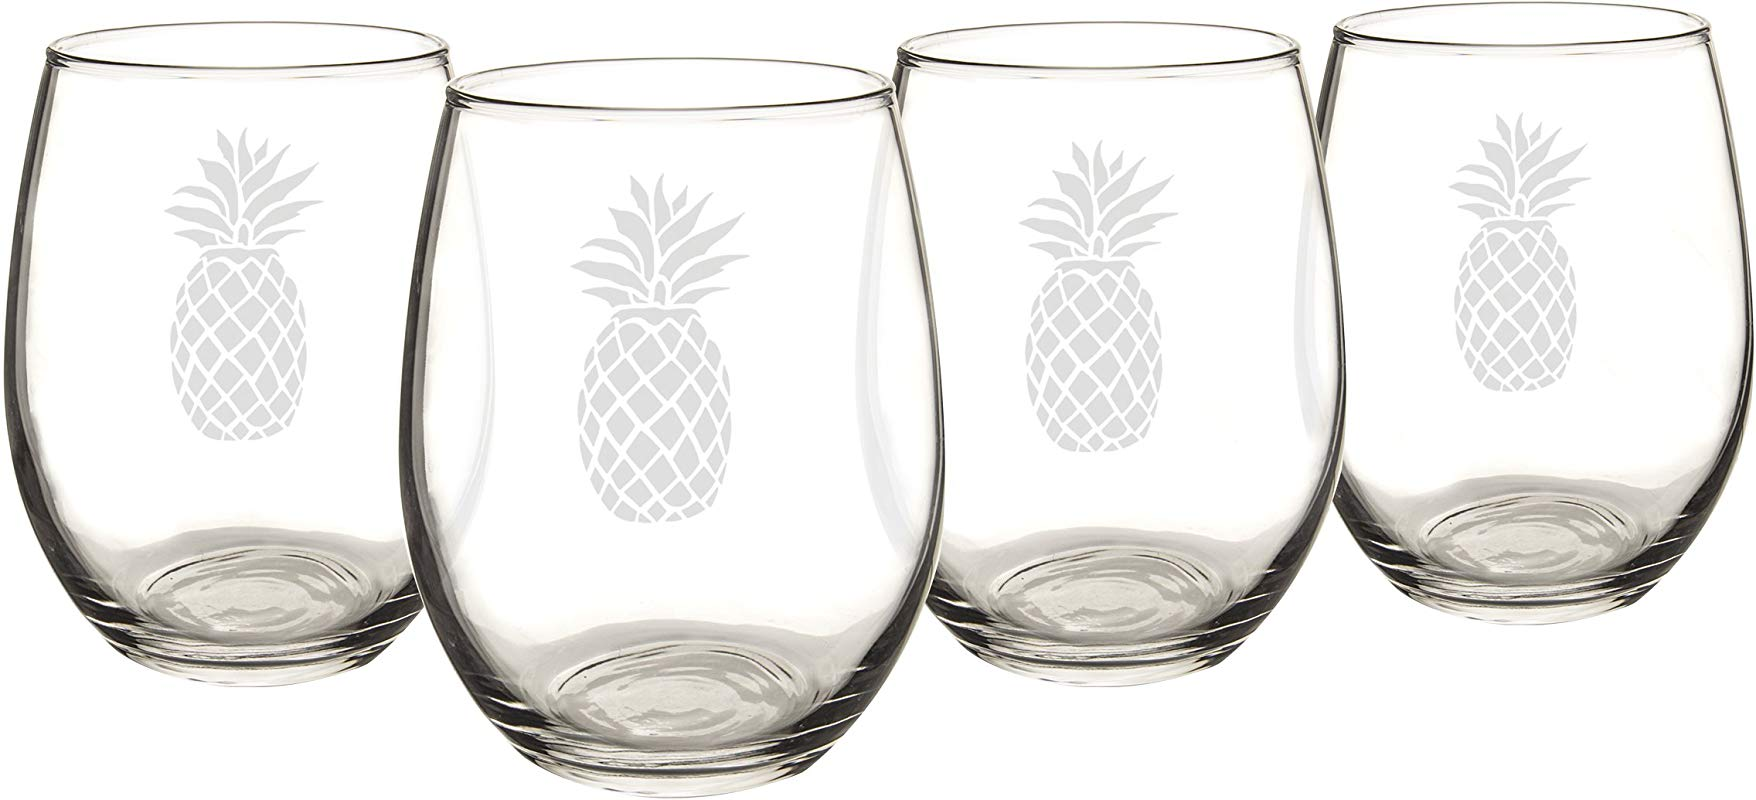 Cathy S Concepts Pineapple Stemless Wine Glasses Set Of 4